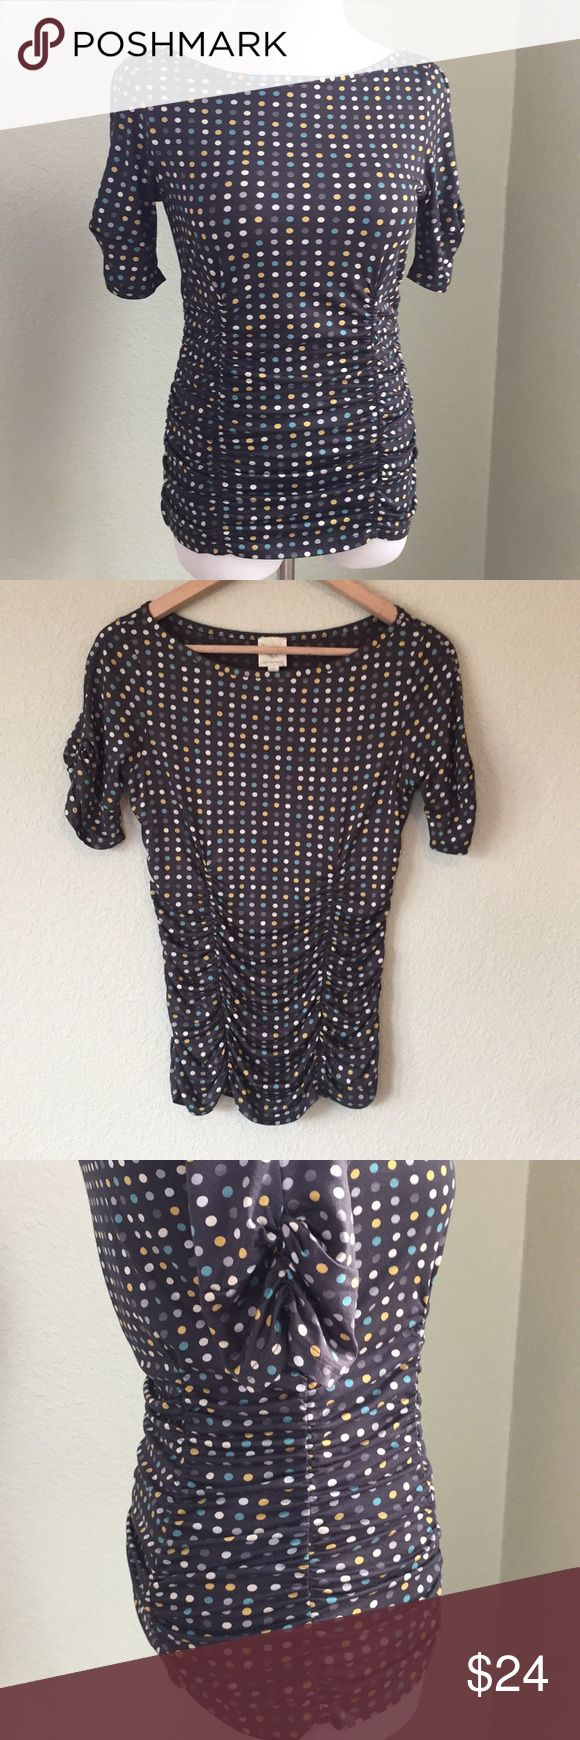 Anthropologie Weston Wear polka dot top small Excellent condition polka dot print knit top. Has stretch. Anthropologie Weston Wear label. Short sleeve.  Fast shipping, offers welcome. Smoke free home. Anthropologie Tops Tees - Short Sleeve